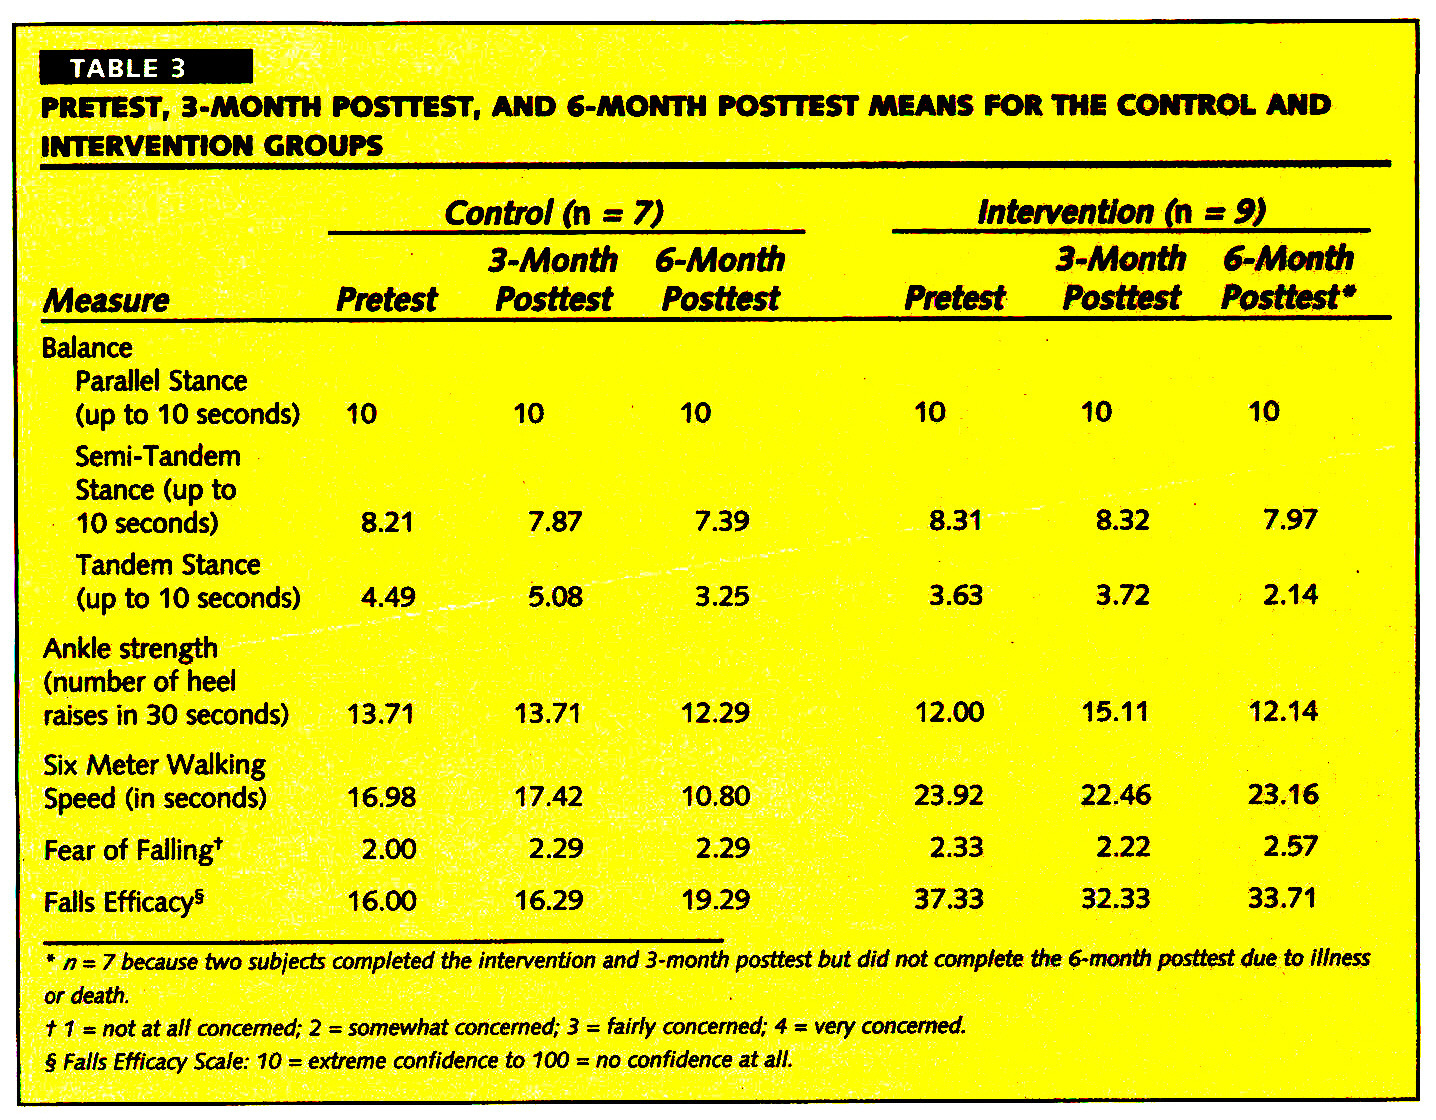 TABLE 3PRETEST, 3-MONTH POSTTEST, AND 6-MONTH POSTTEST MEANS FOR THE CONTROL AND INTERVENTION GROUPS